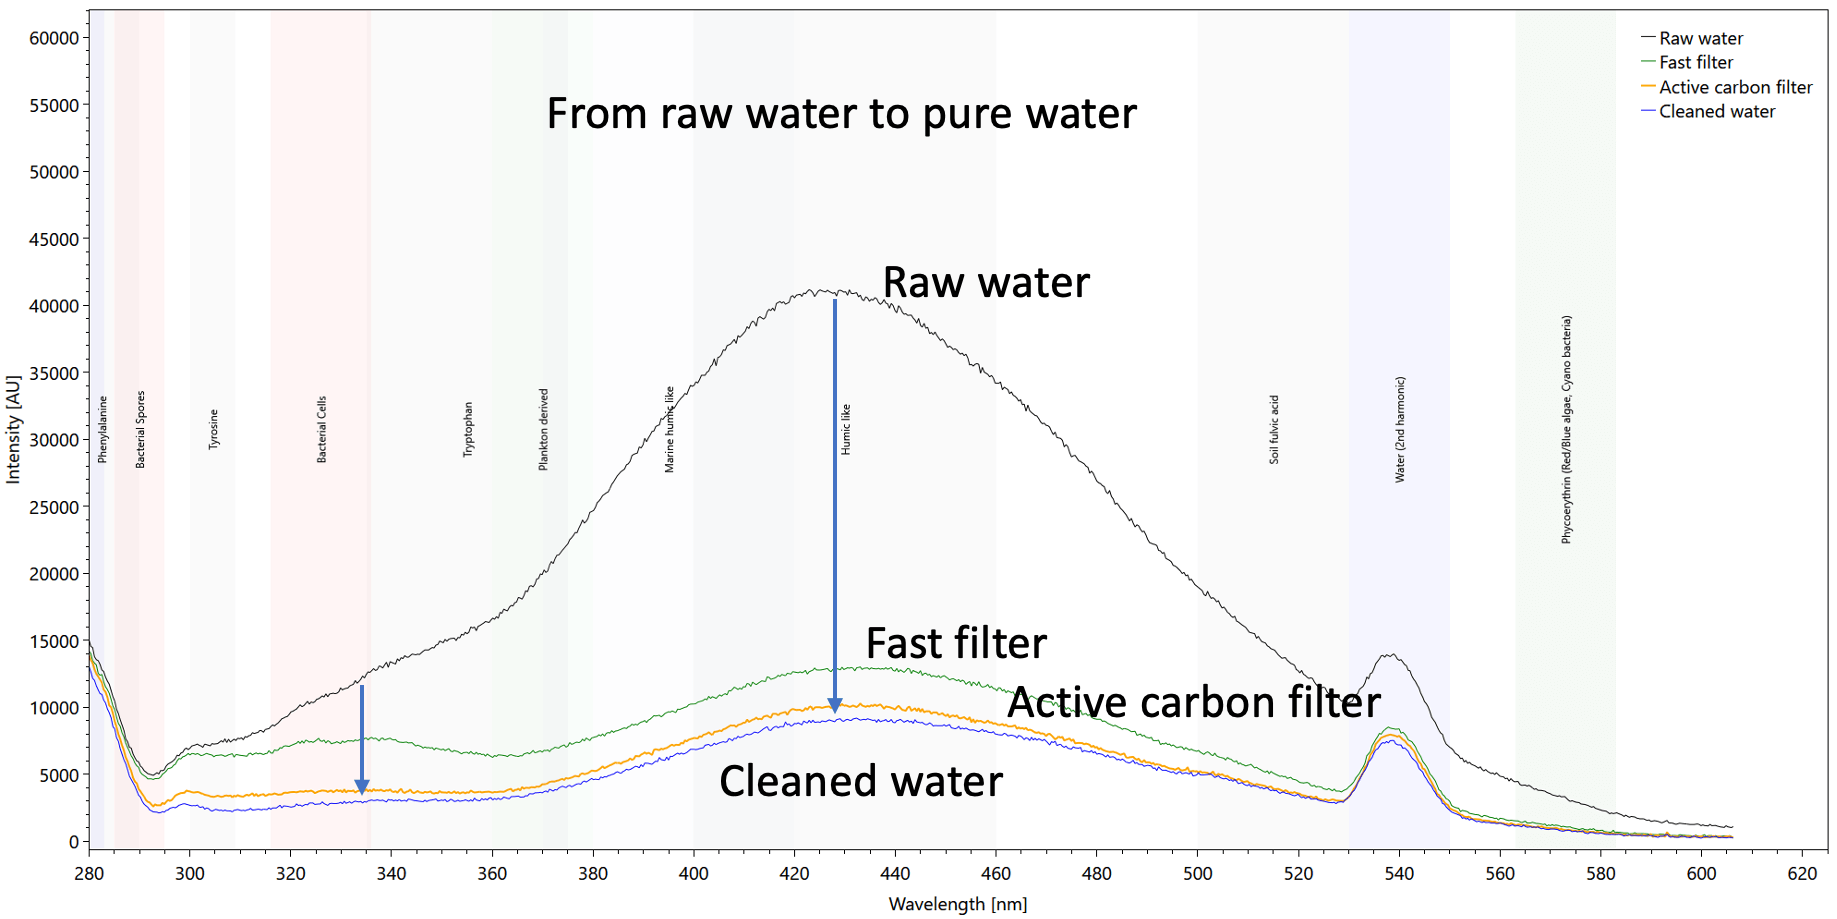 Filter integrity